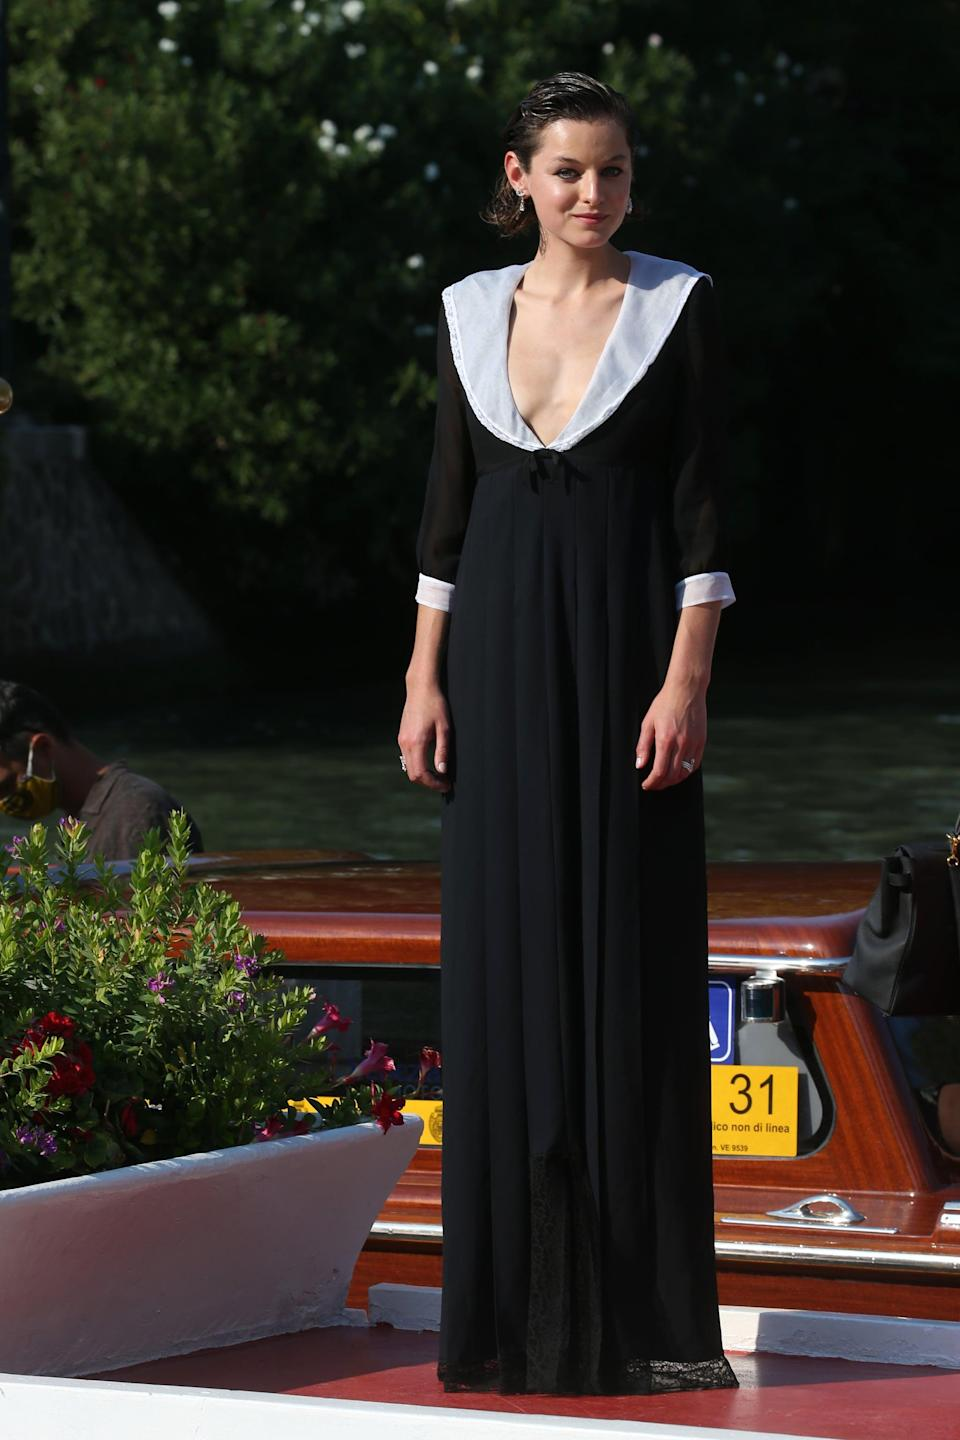 <p>Emma Corrin wore a black maxi dress with a contrasting white Peter Pan collar and cuffs to the 2020 Venice Film Festival.</p>